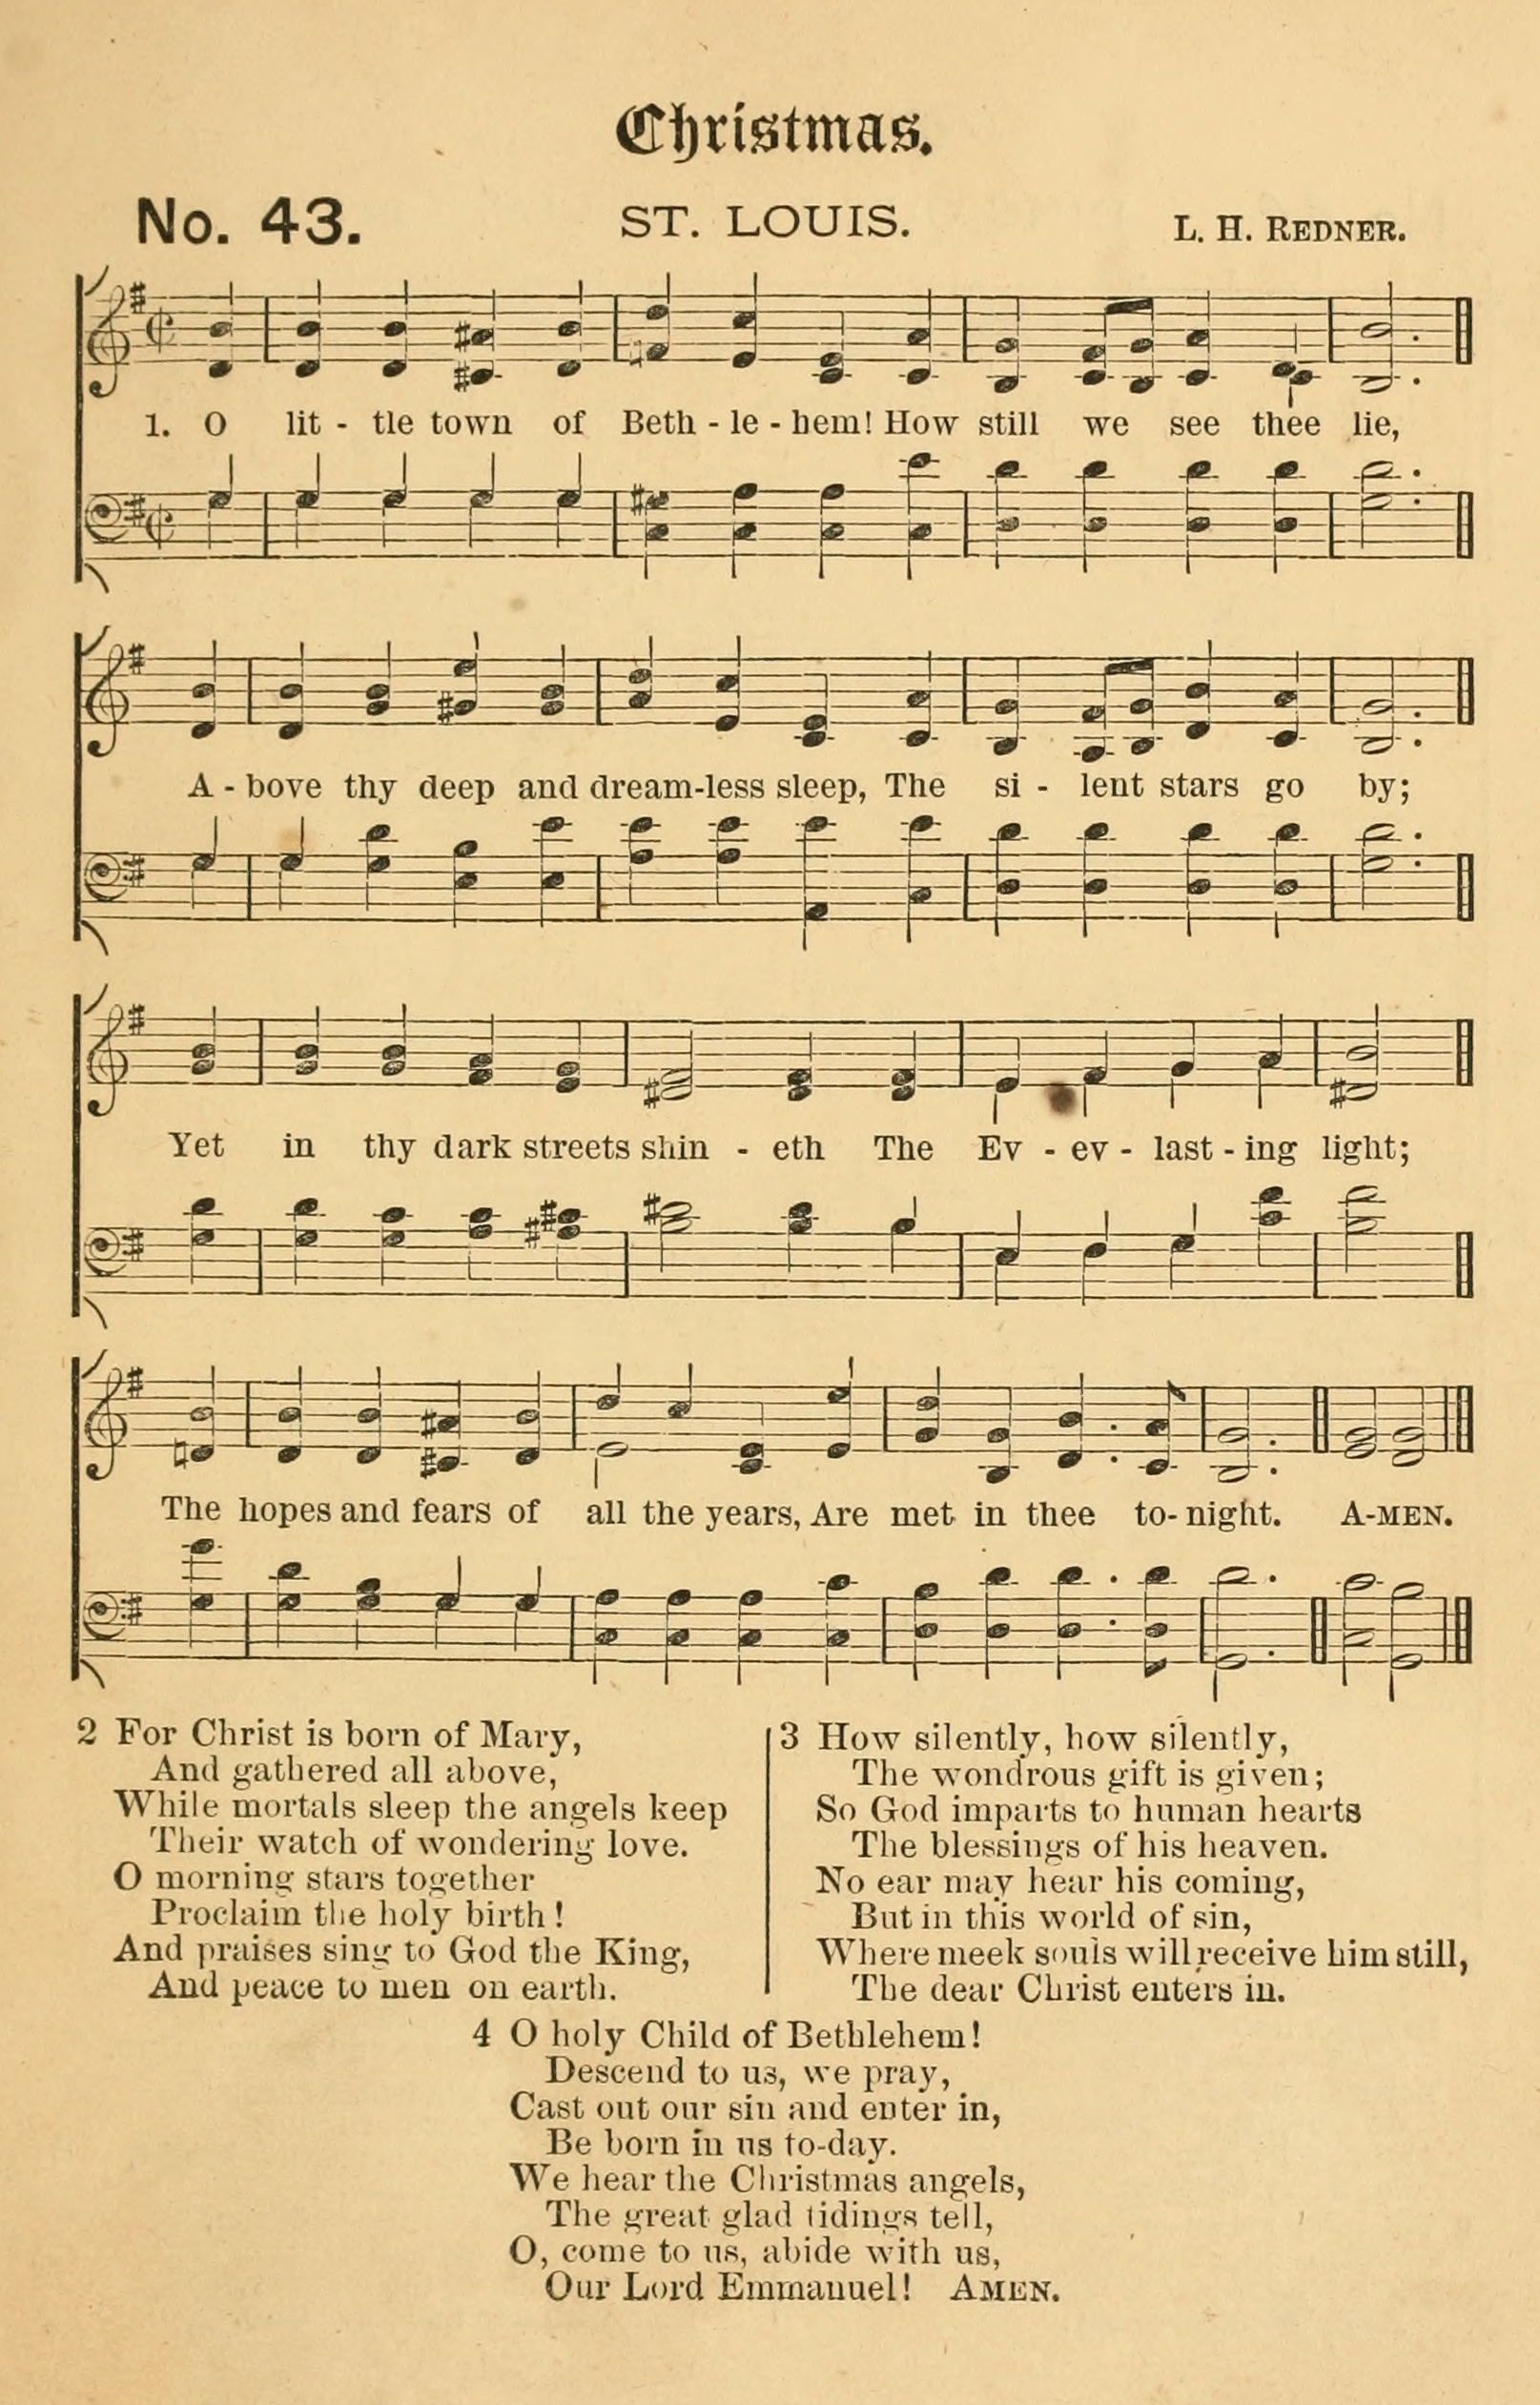 Fig. 2.  William R. Huntington,  The Church Porch: A Service Book and Hymnal for Sunday Schools  (NY: E.P. Dutton, 1874).